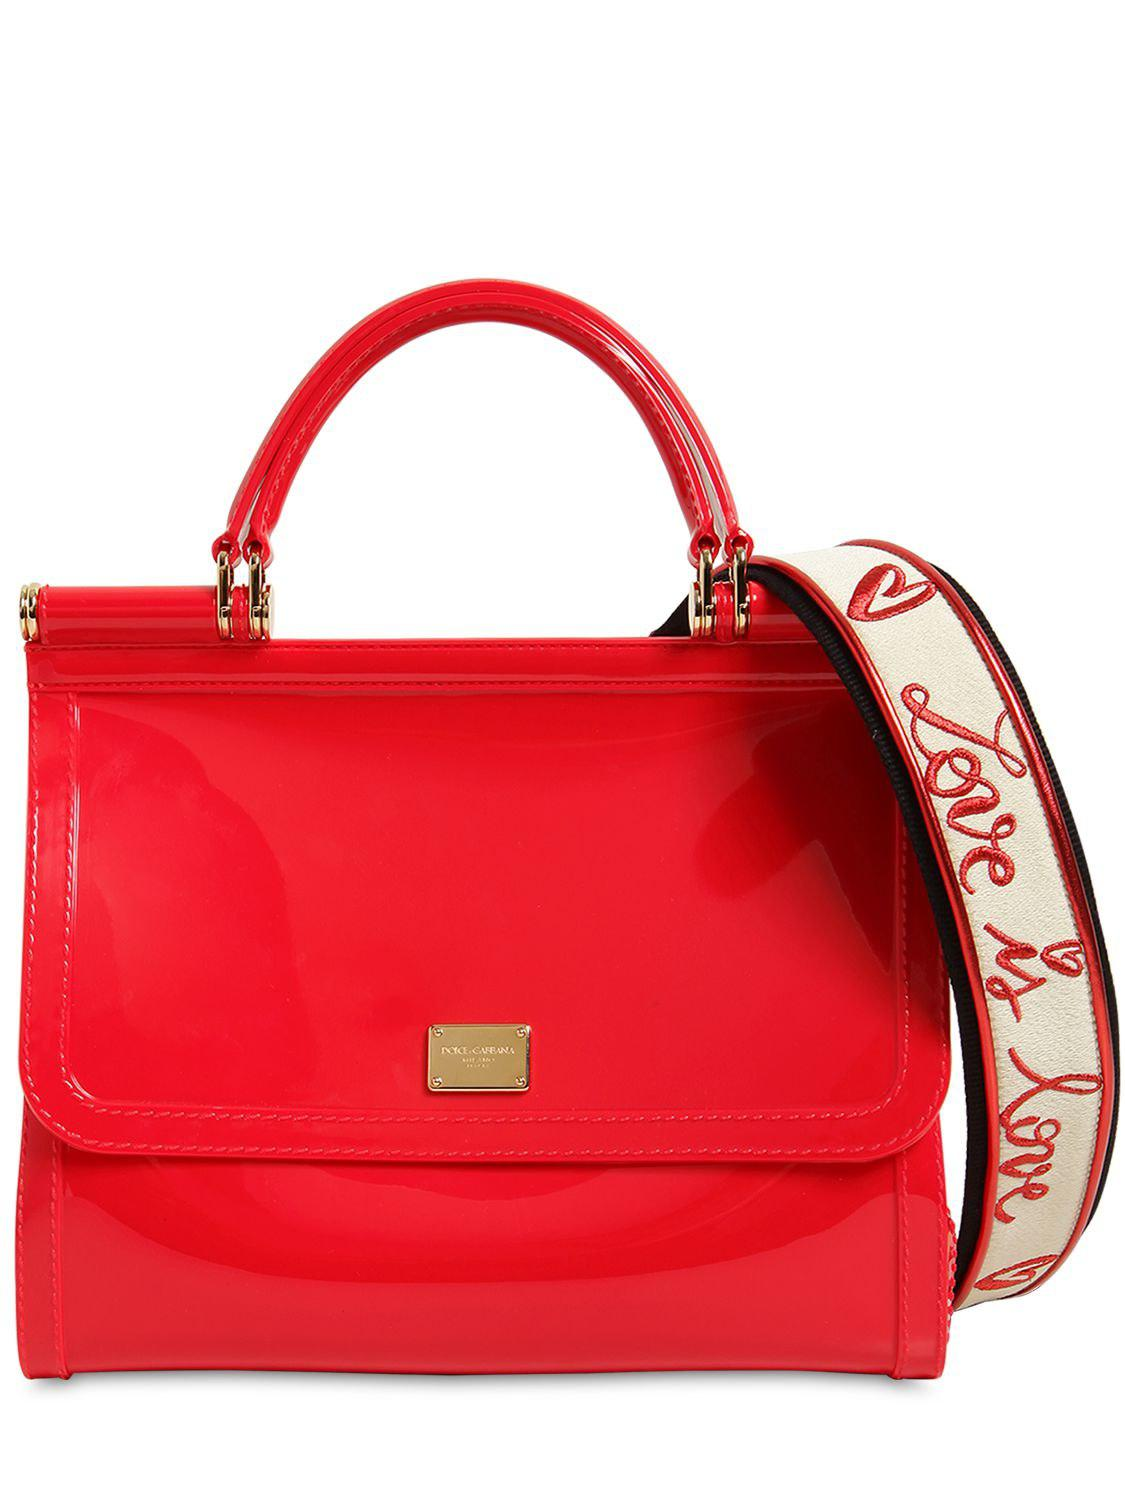 2c9b16ac87be Lyst - Dolce   Gabbana Sicily Faux Patent Leather Bag in Red